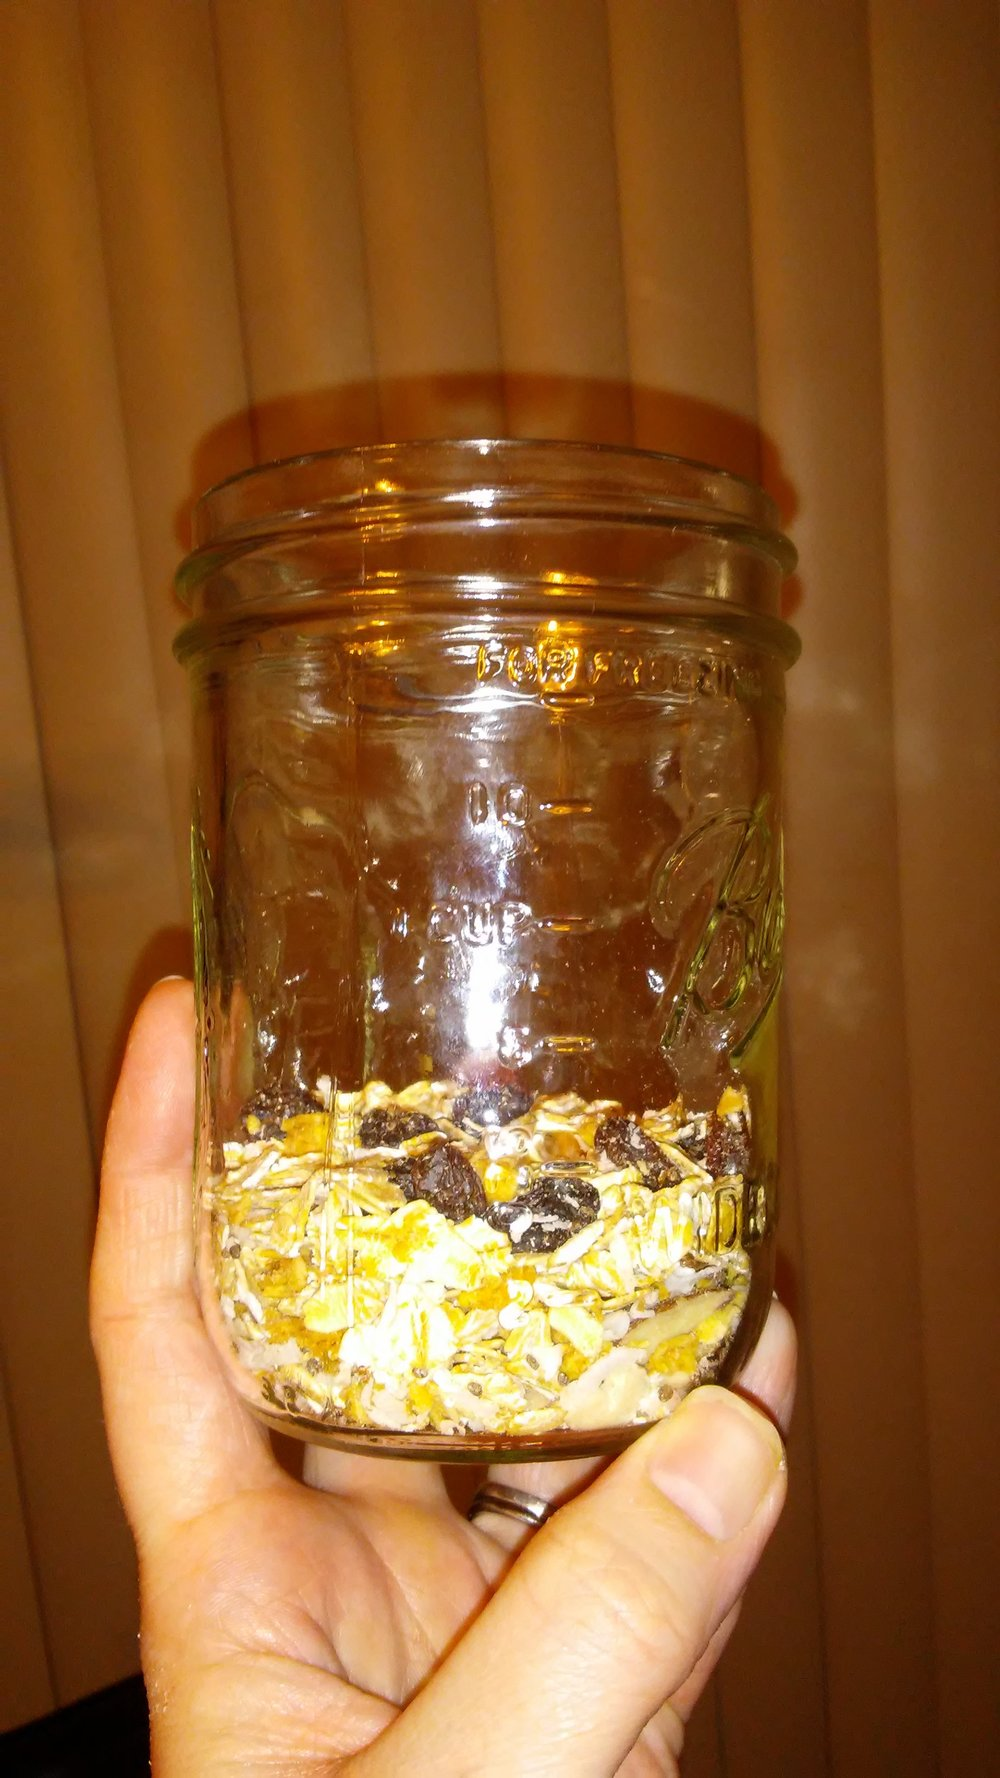 Oats in a pint jar